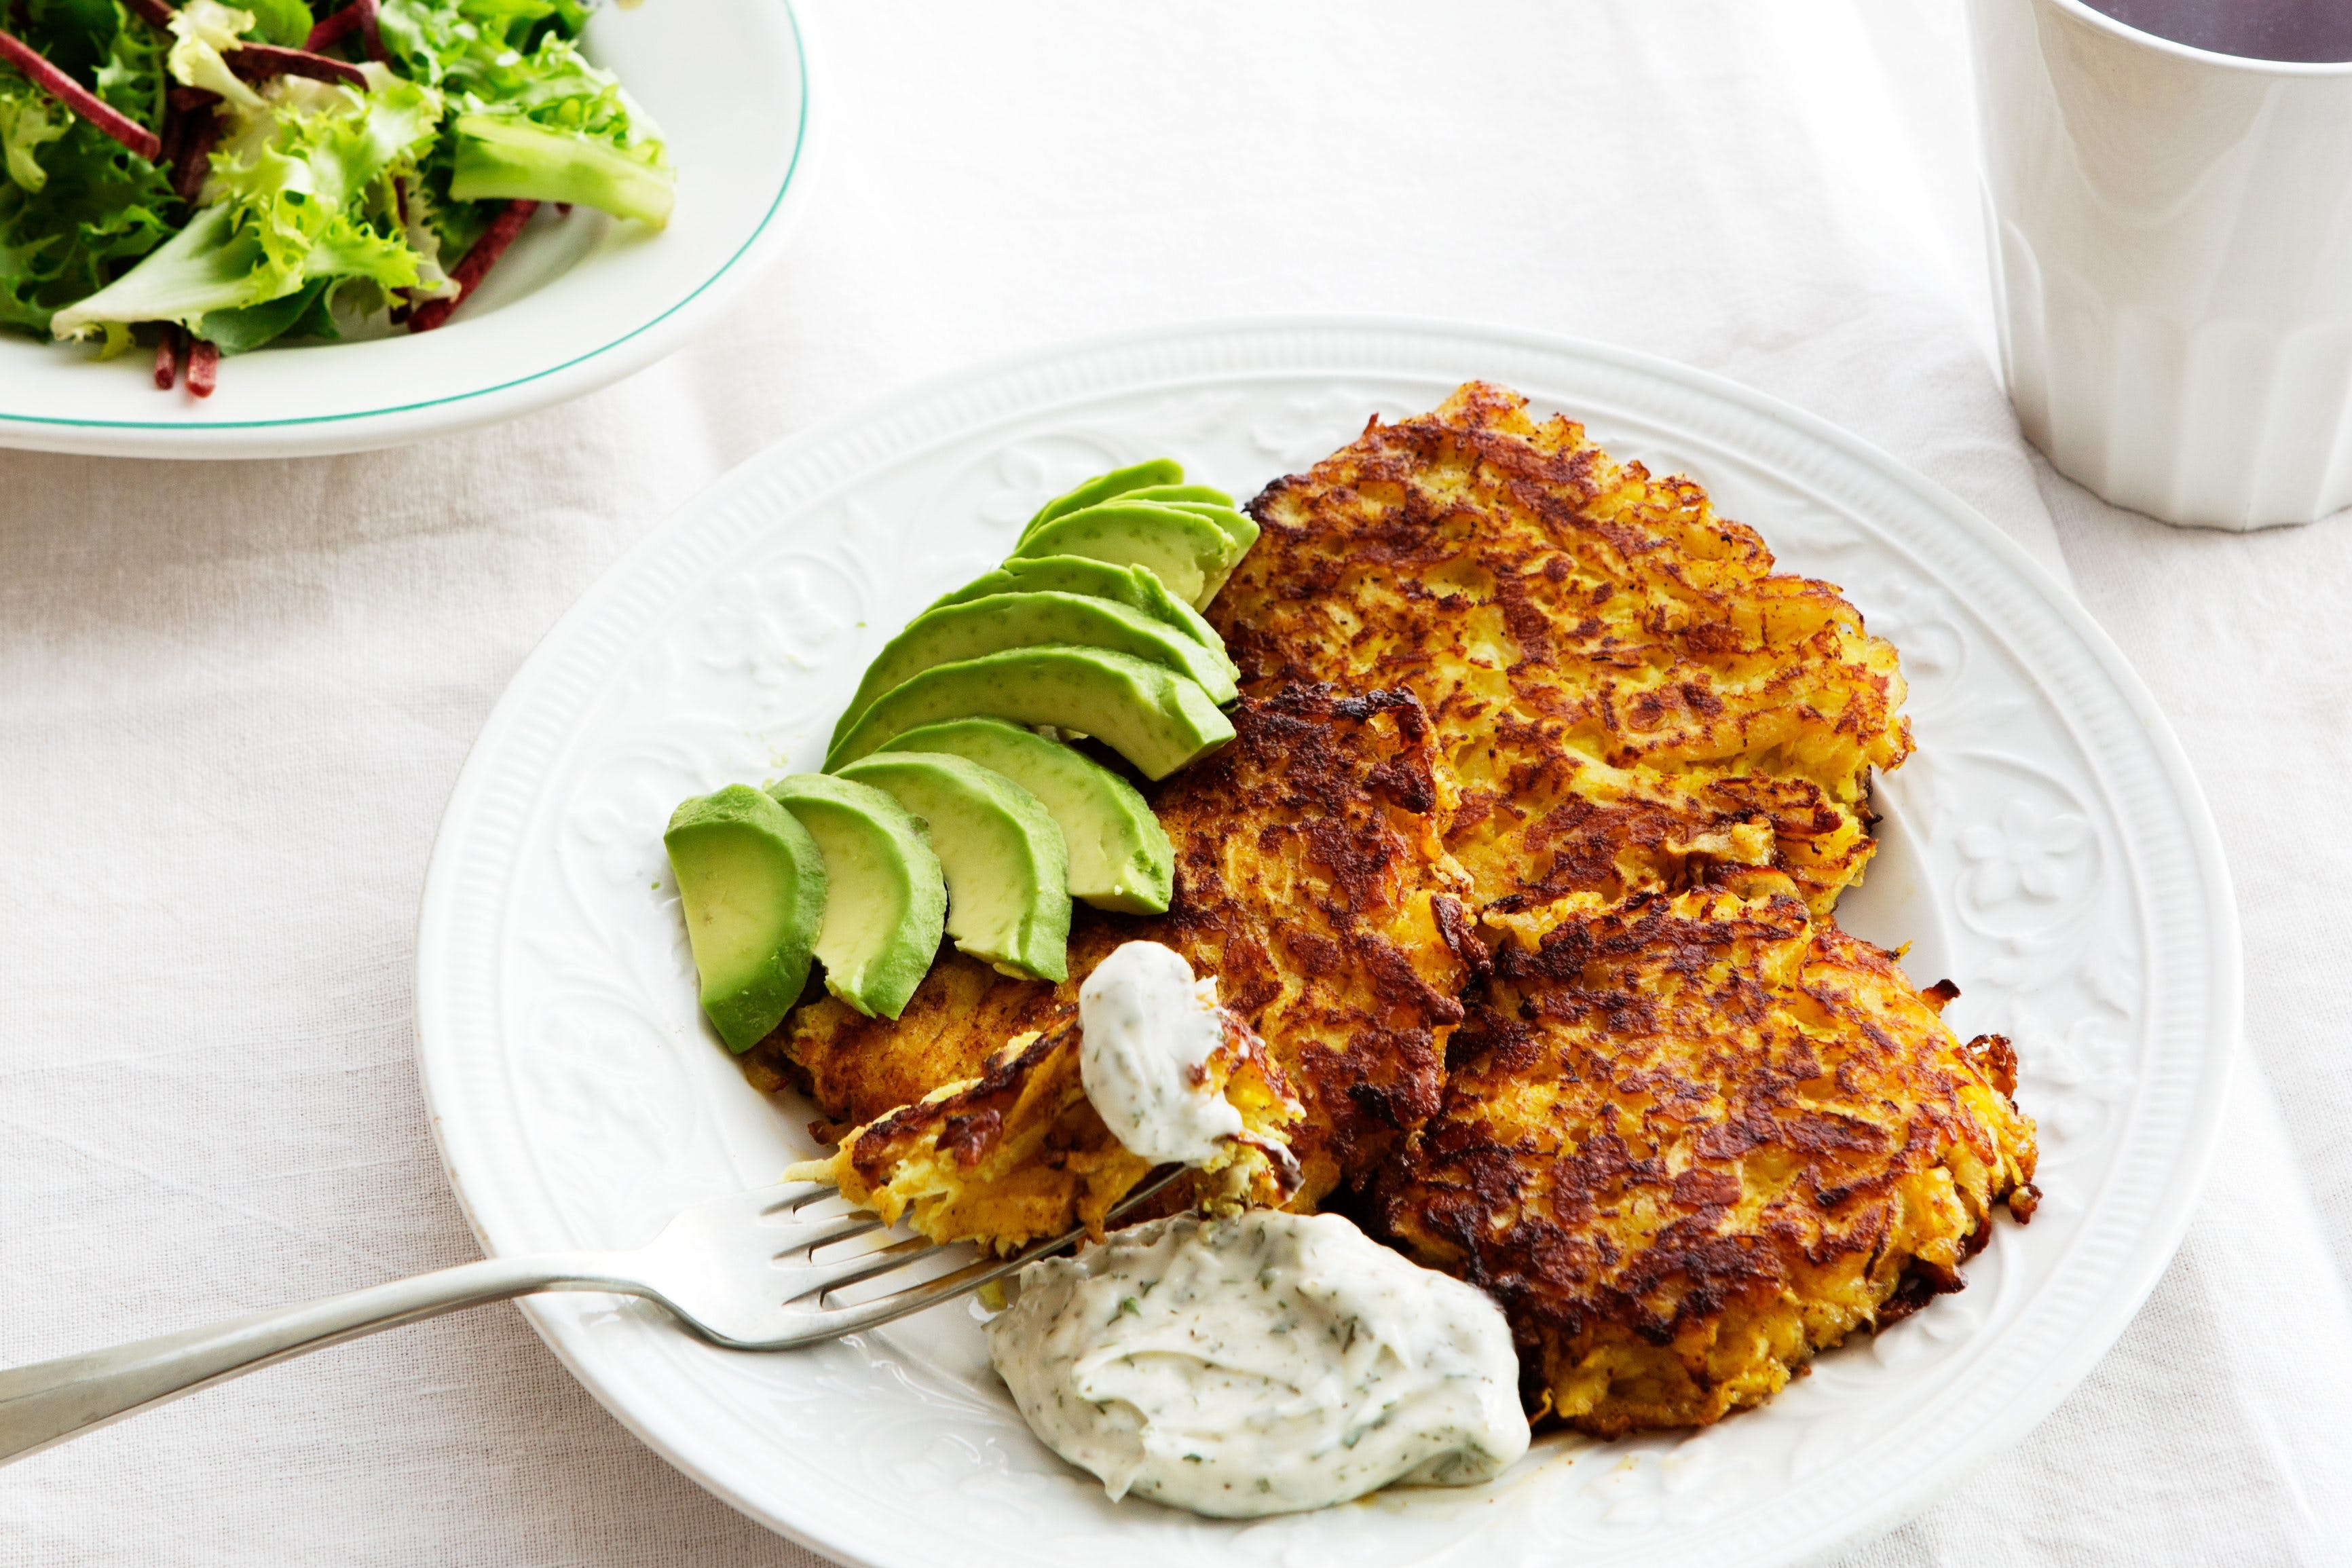 Low-carb rutabaga fritters with avocado